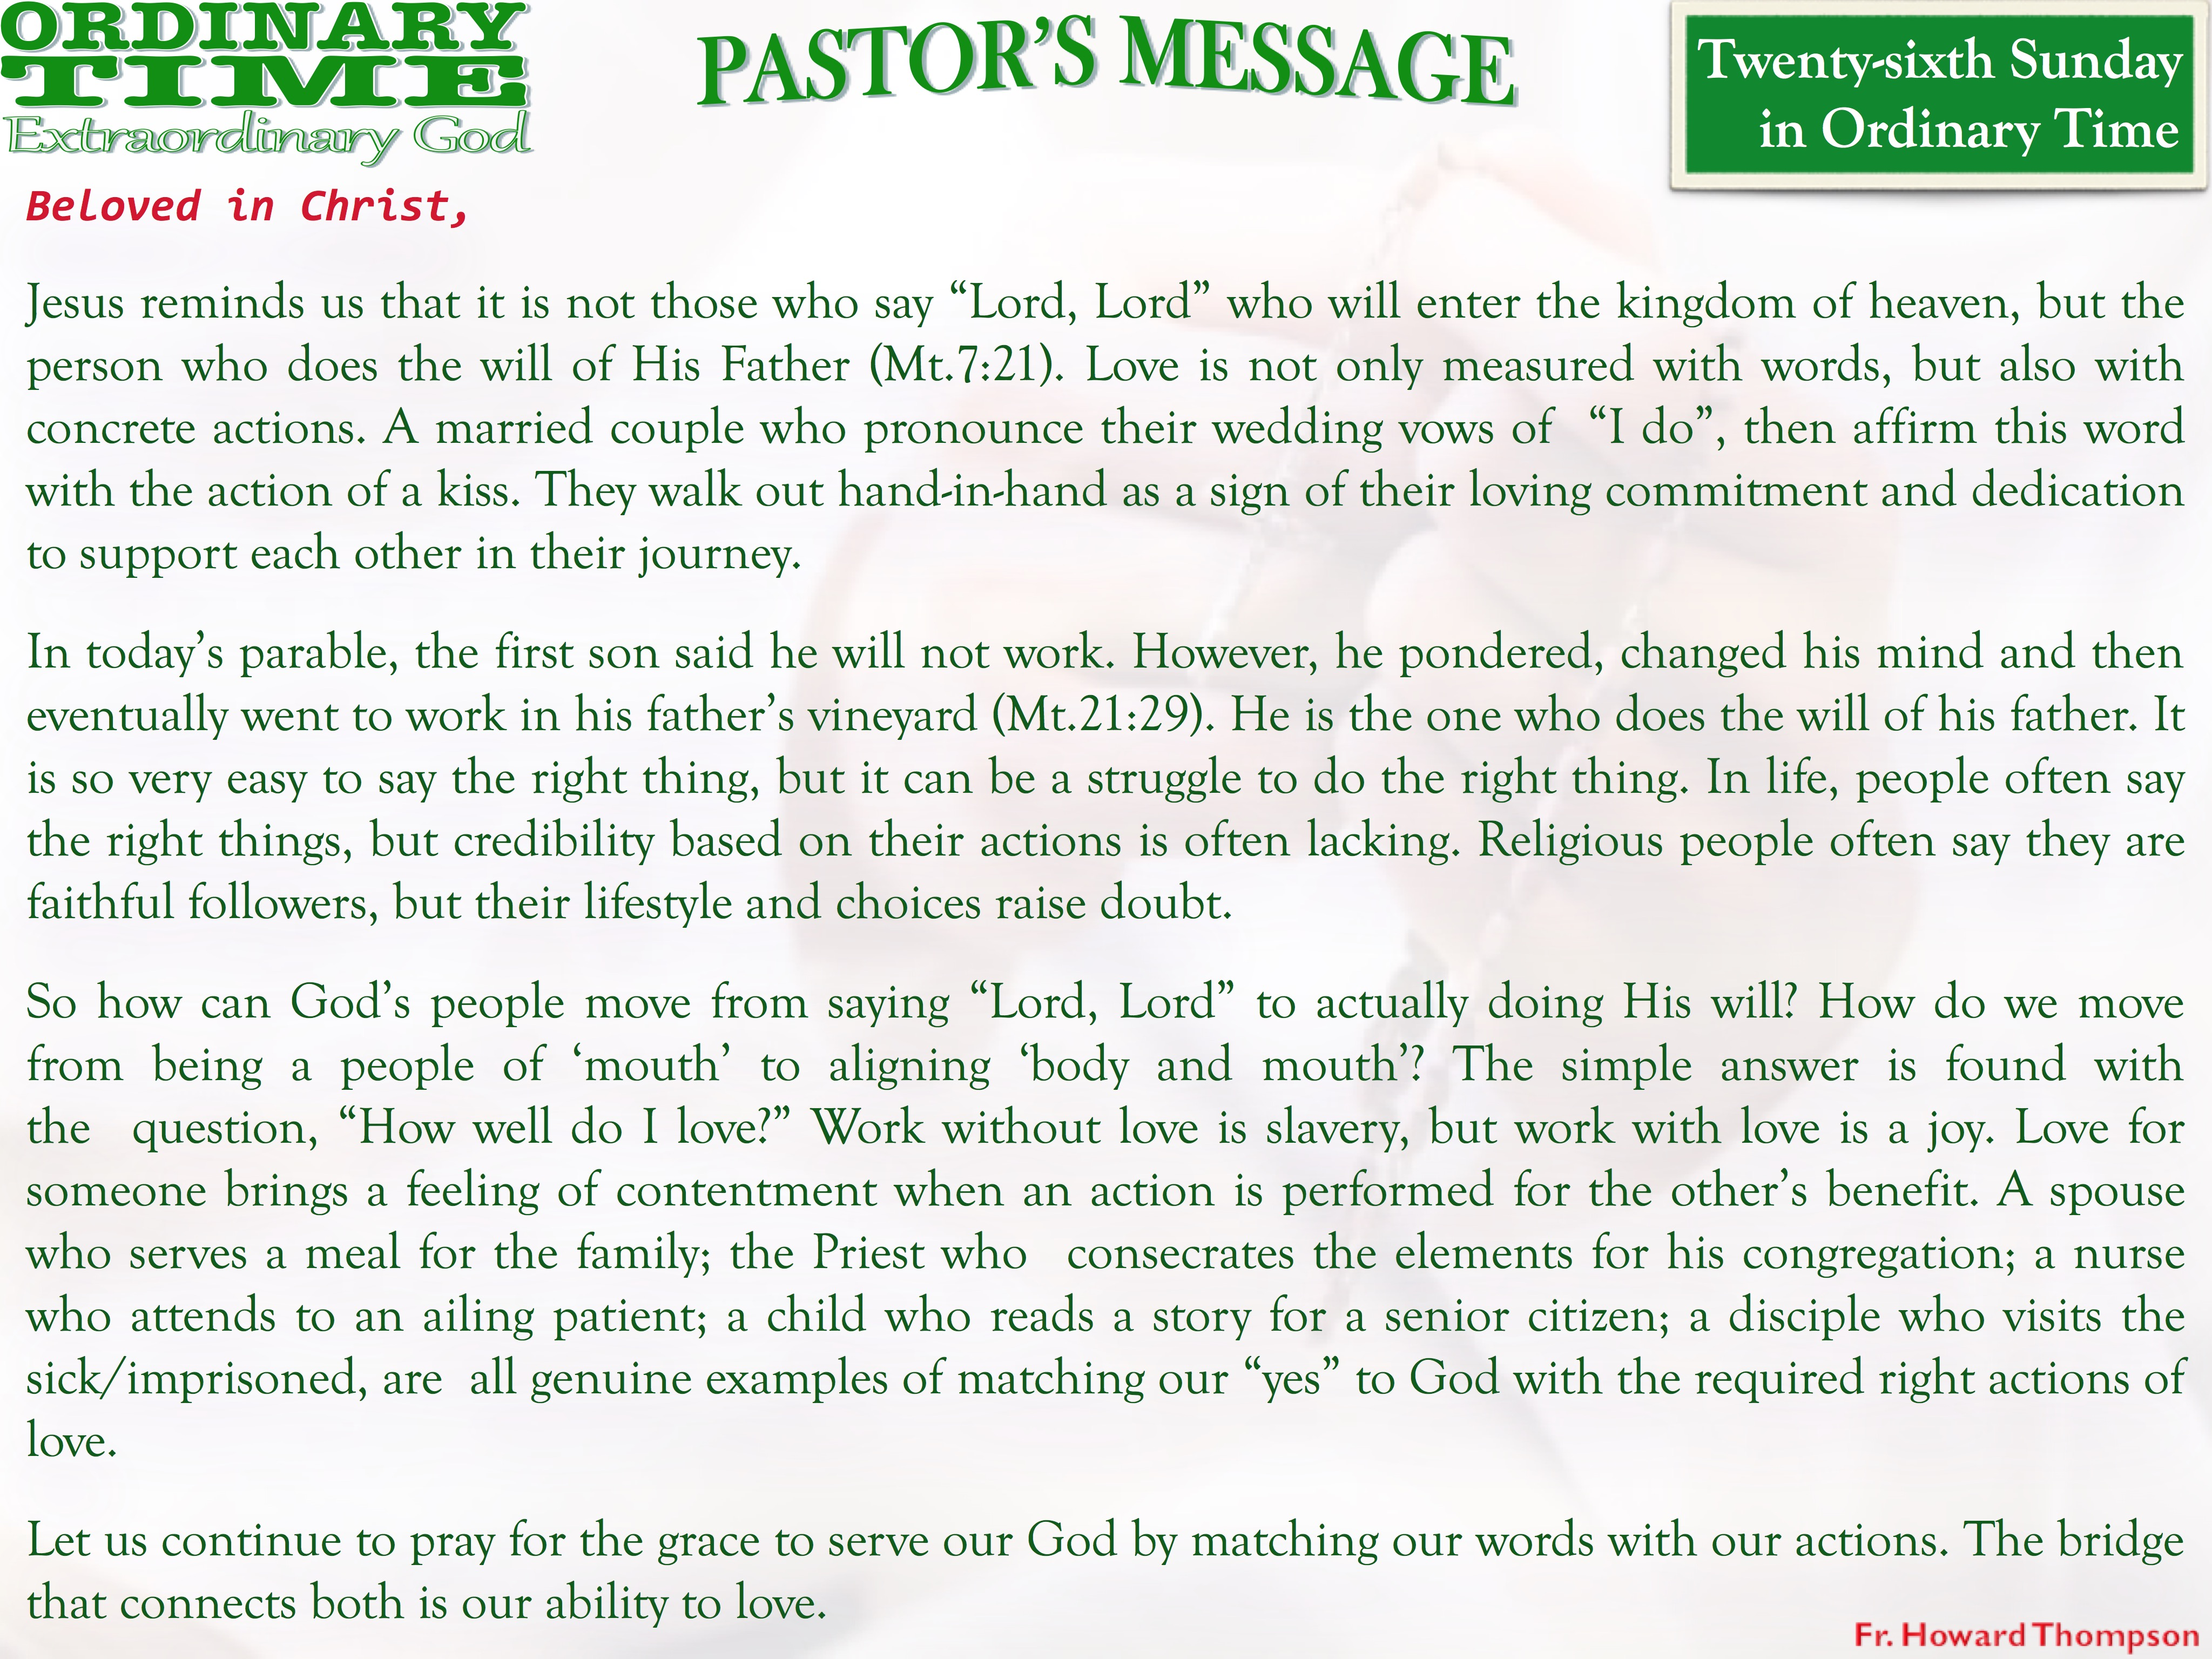 Pastor's Message - 30 Twenty-sixth Sunday in Ordinary Time